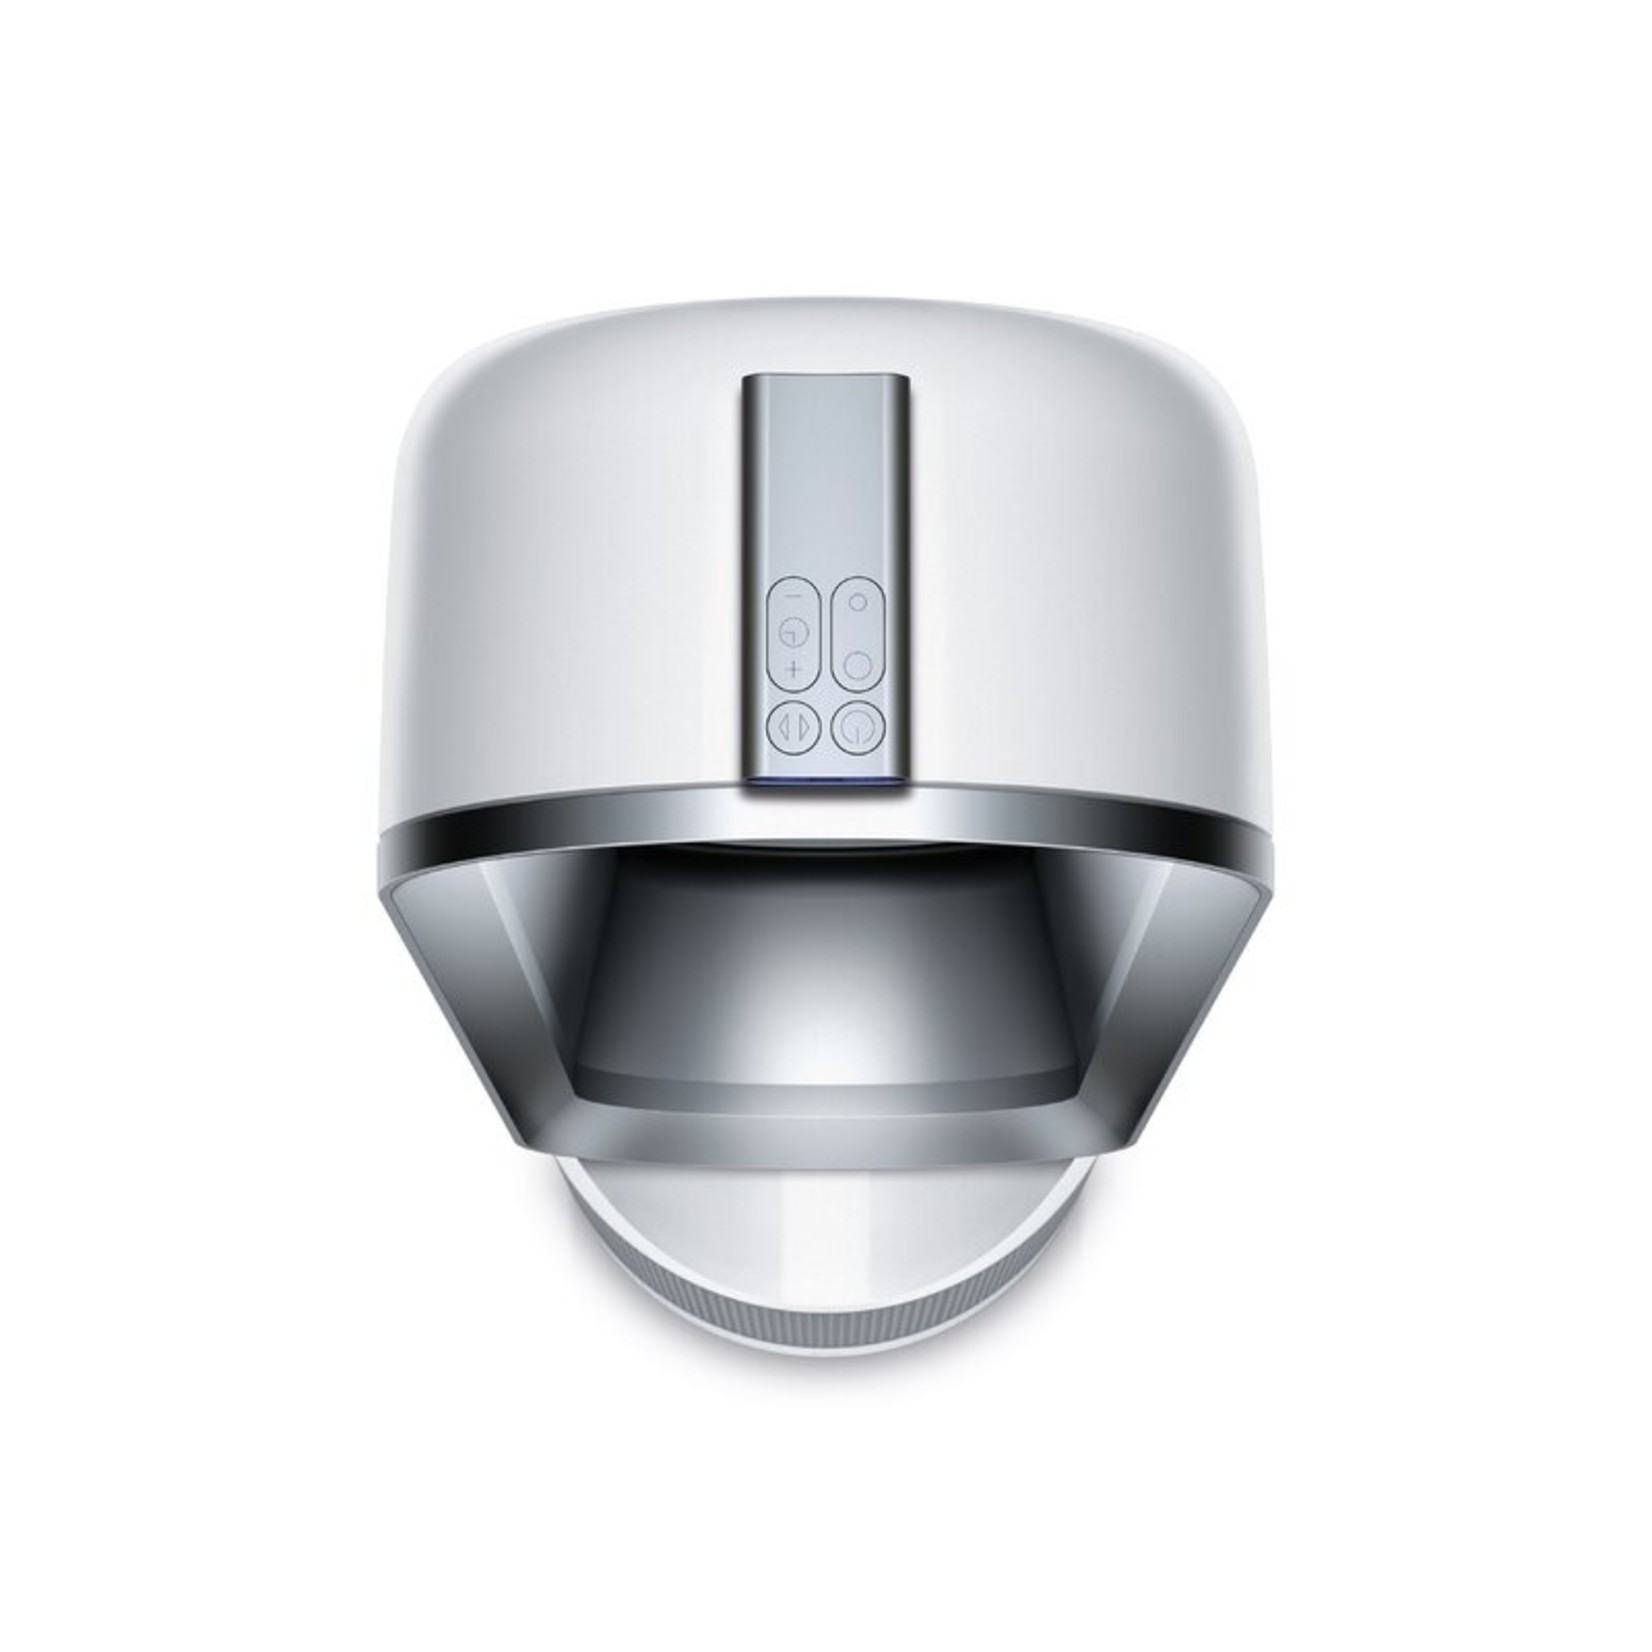 *Dyson TP01 Pure Cool Purifier with HEPA Filter